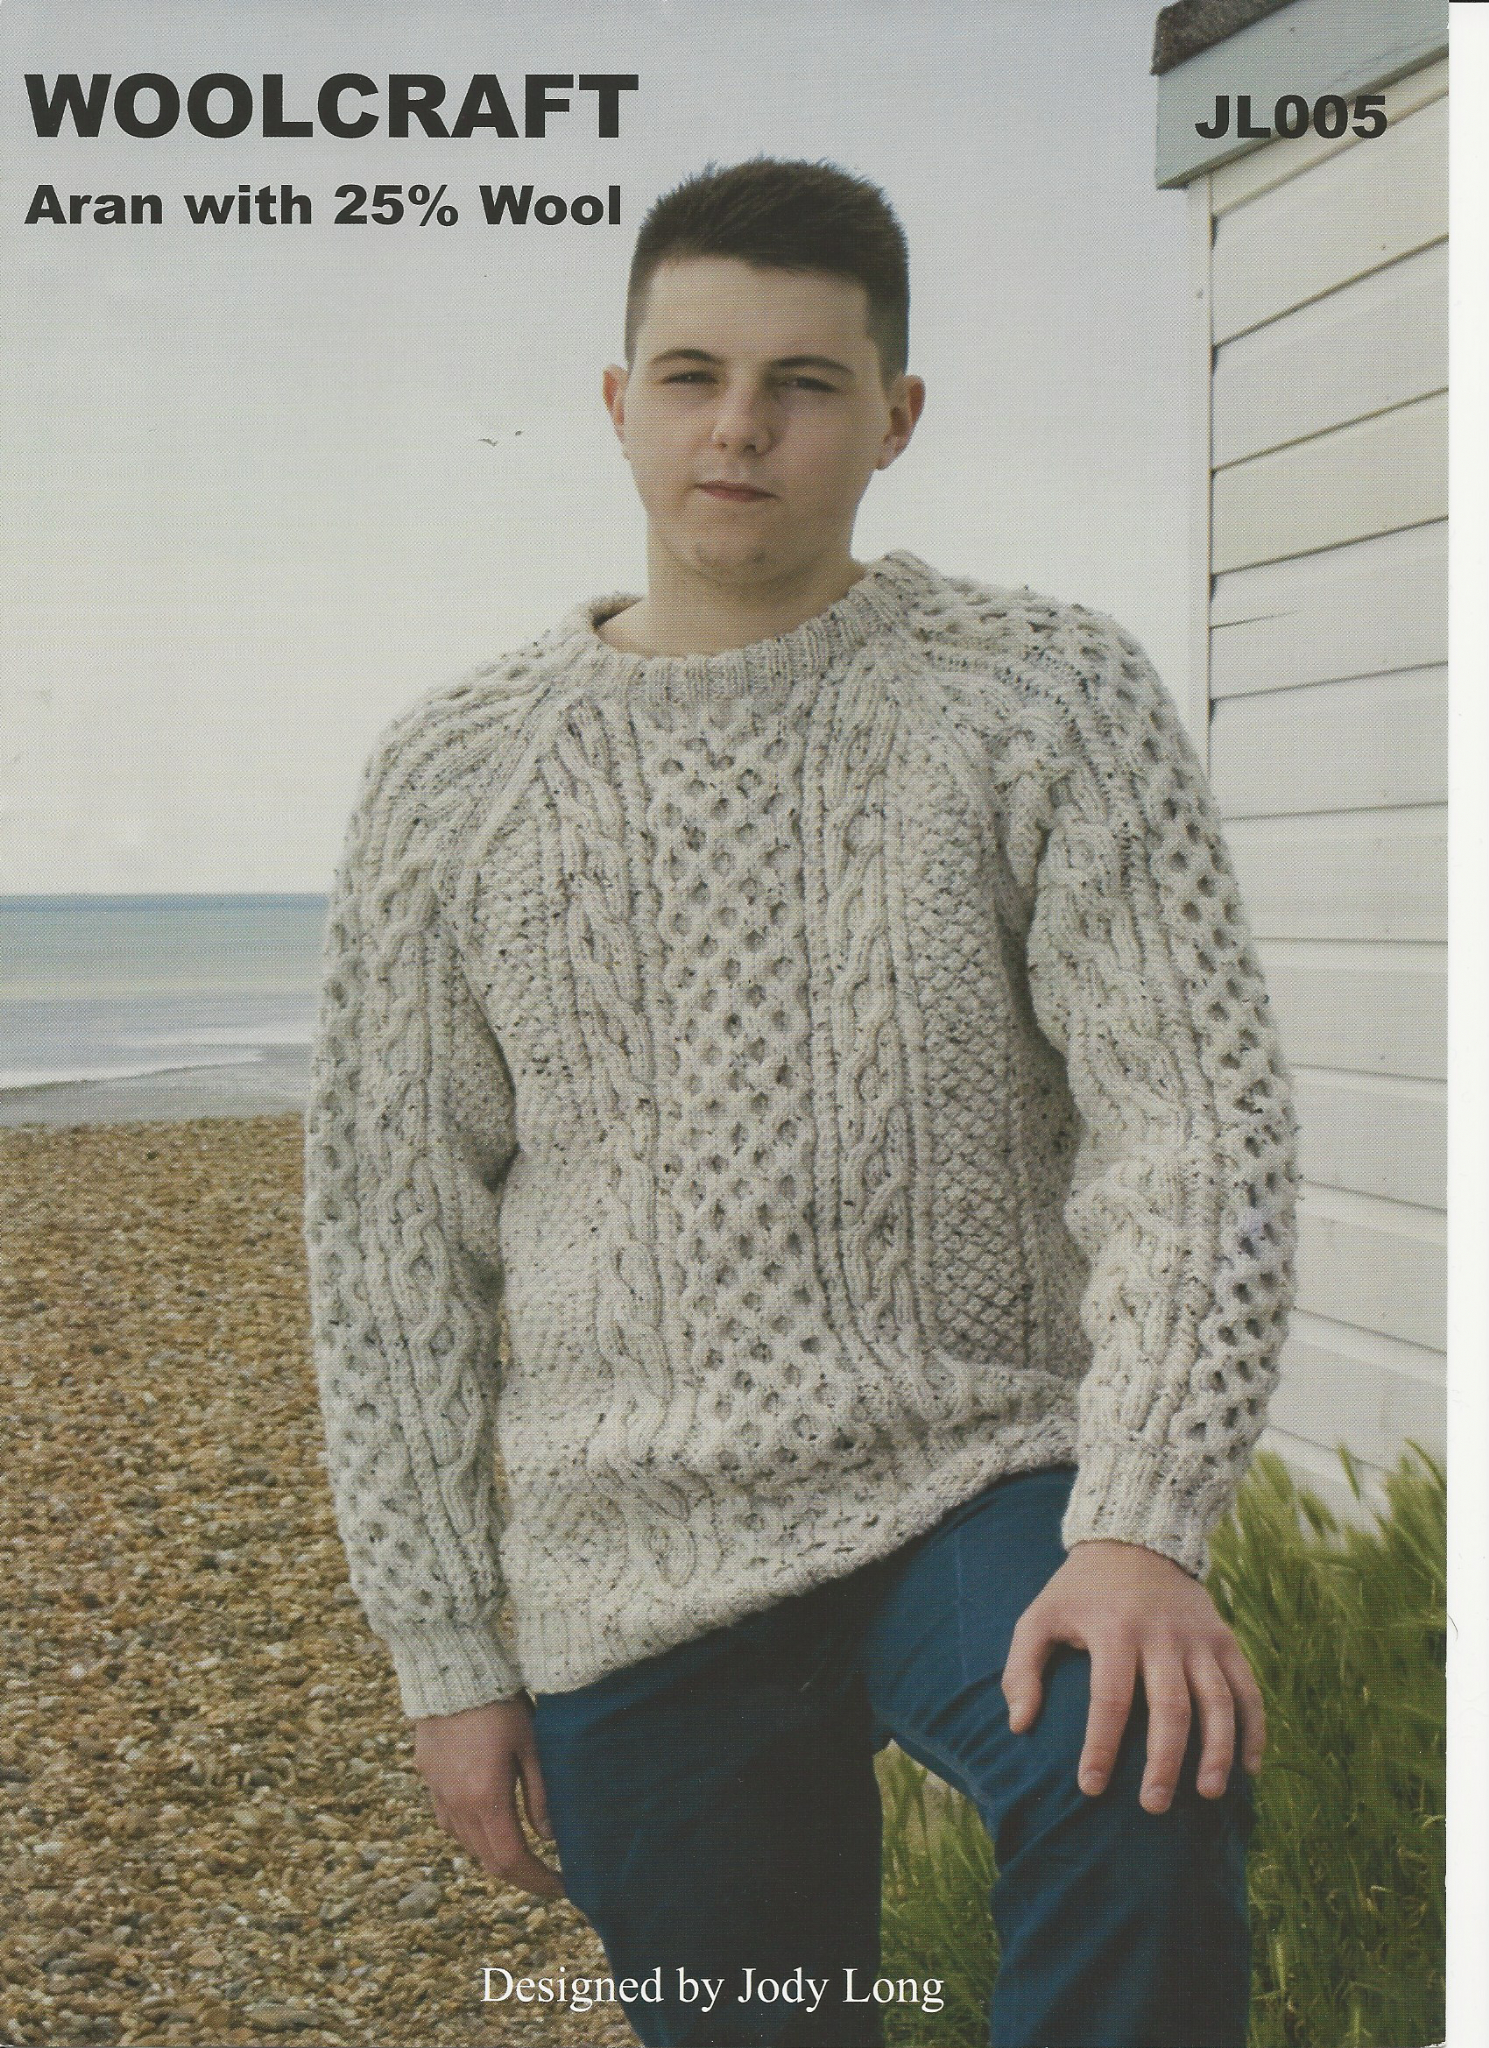 Aran Jumper Knitting Patterns Free Mens Aran Cardigan Knitting Patterns